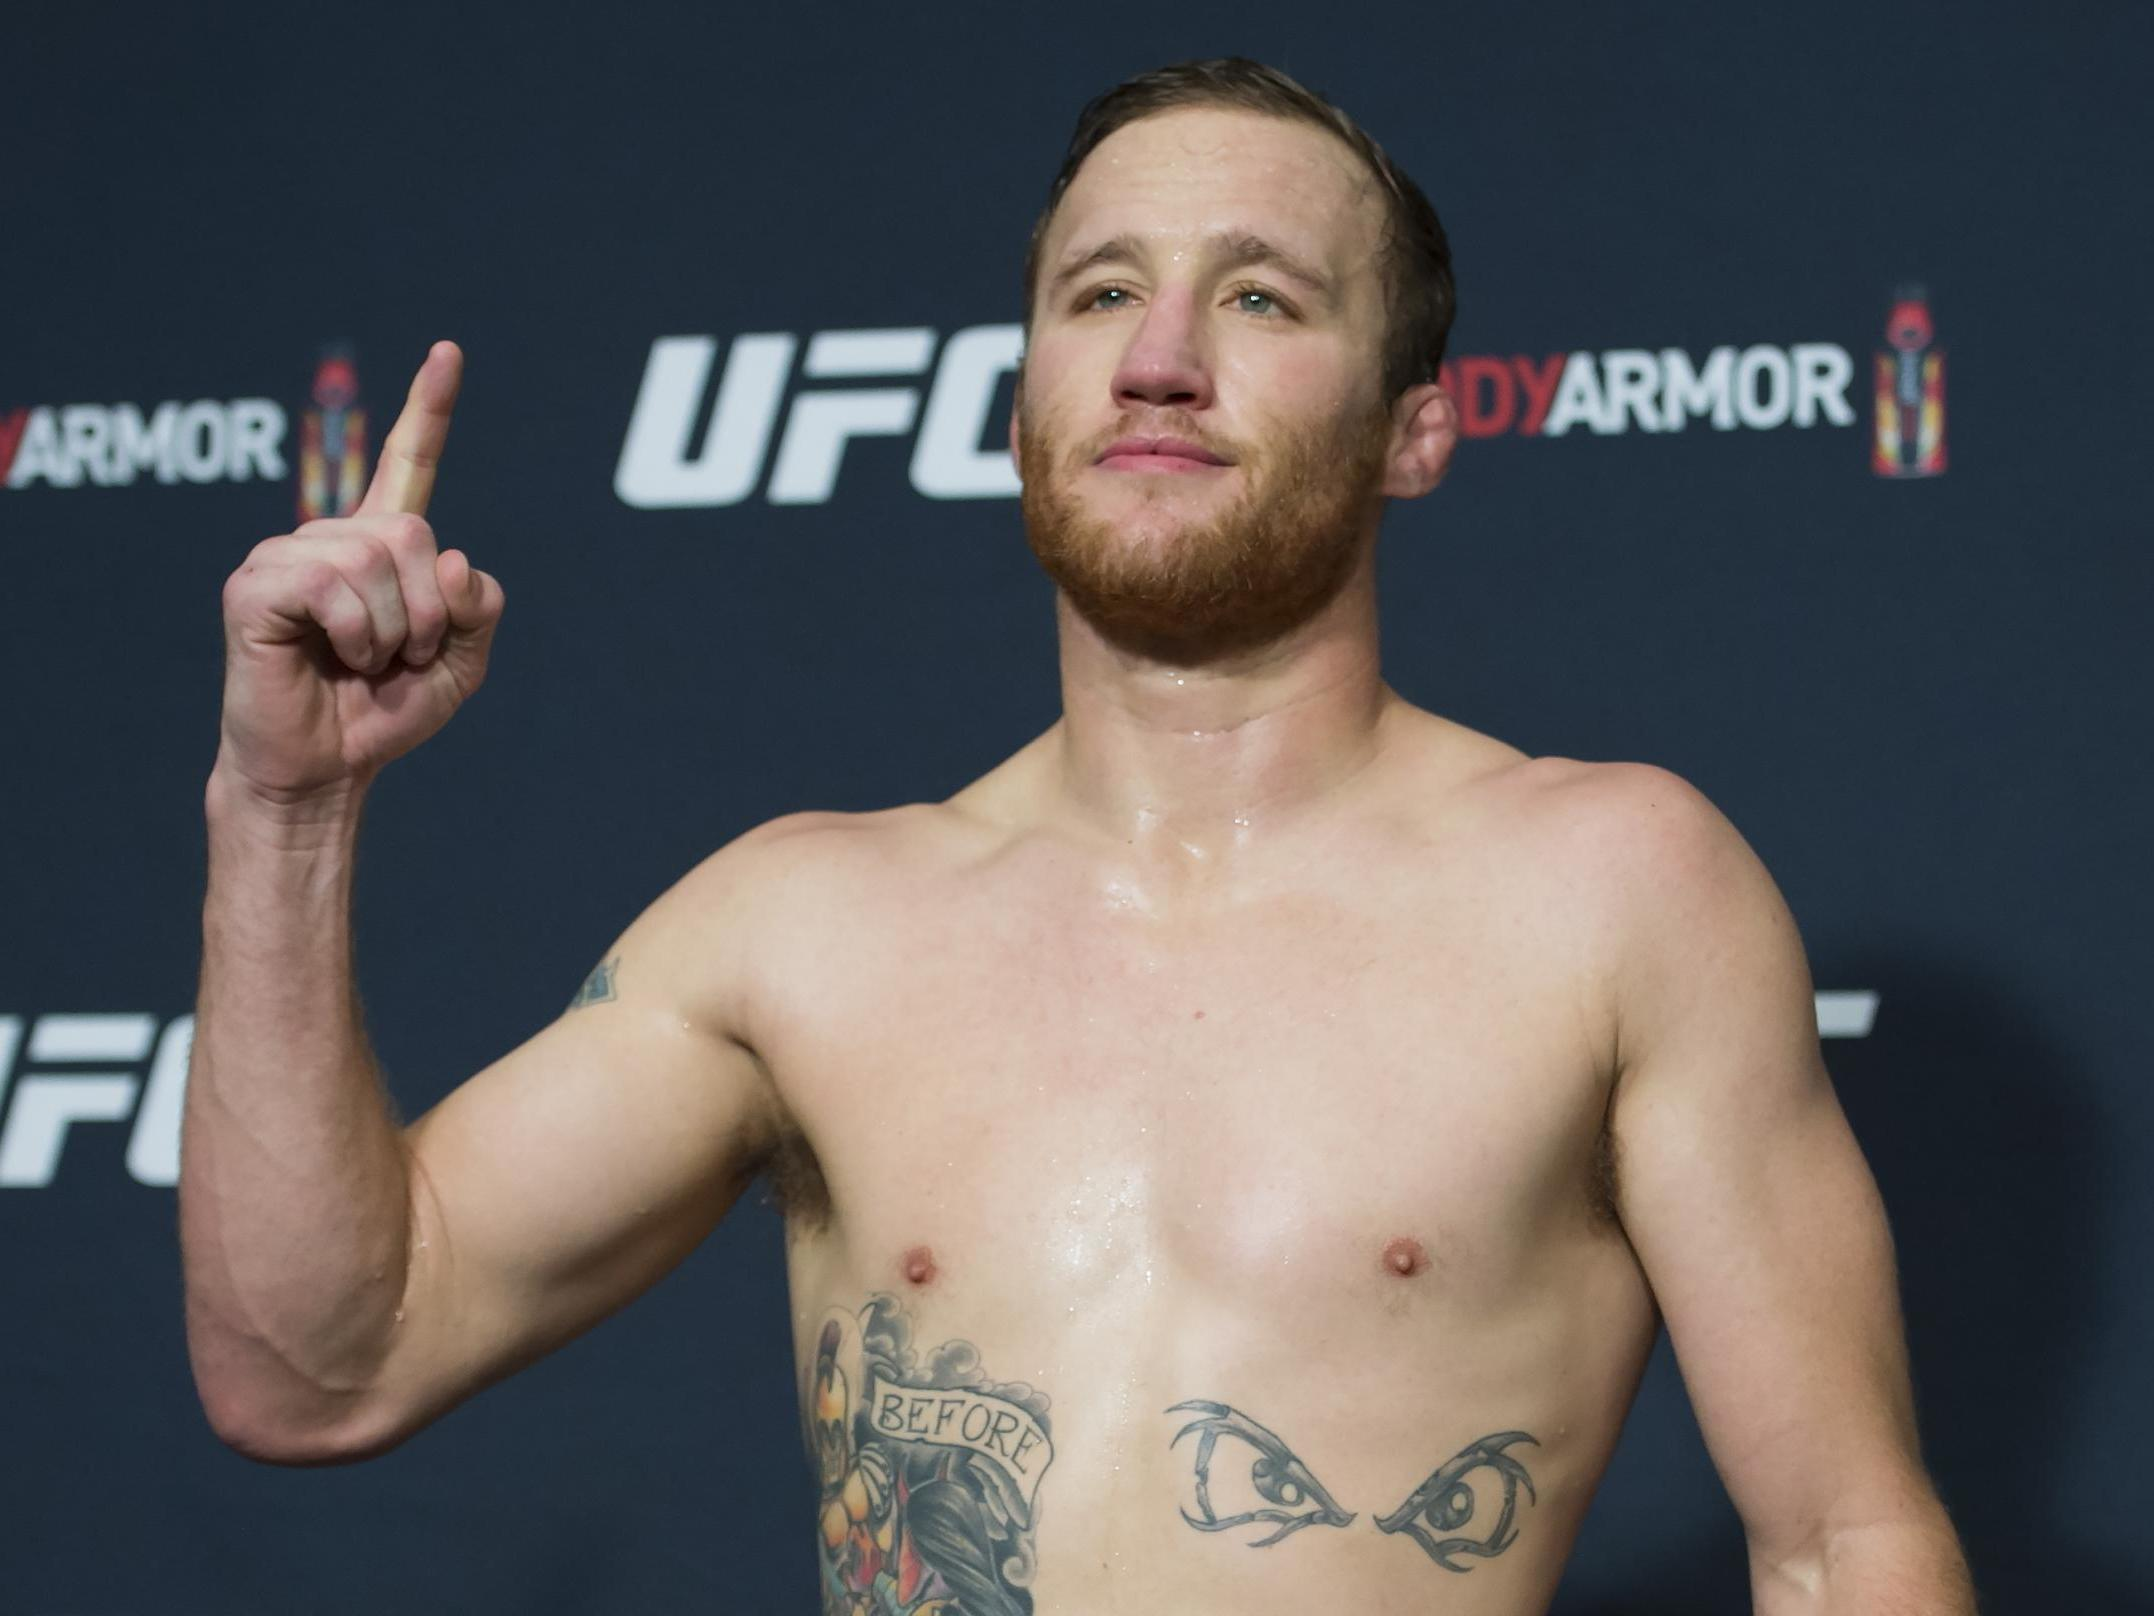 UFC 249: Justin Gaethje defends behind-closed-doors event ahead of Tony Ferguson fight